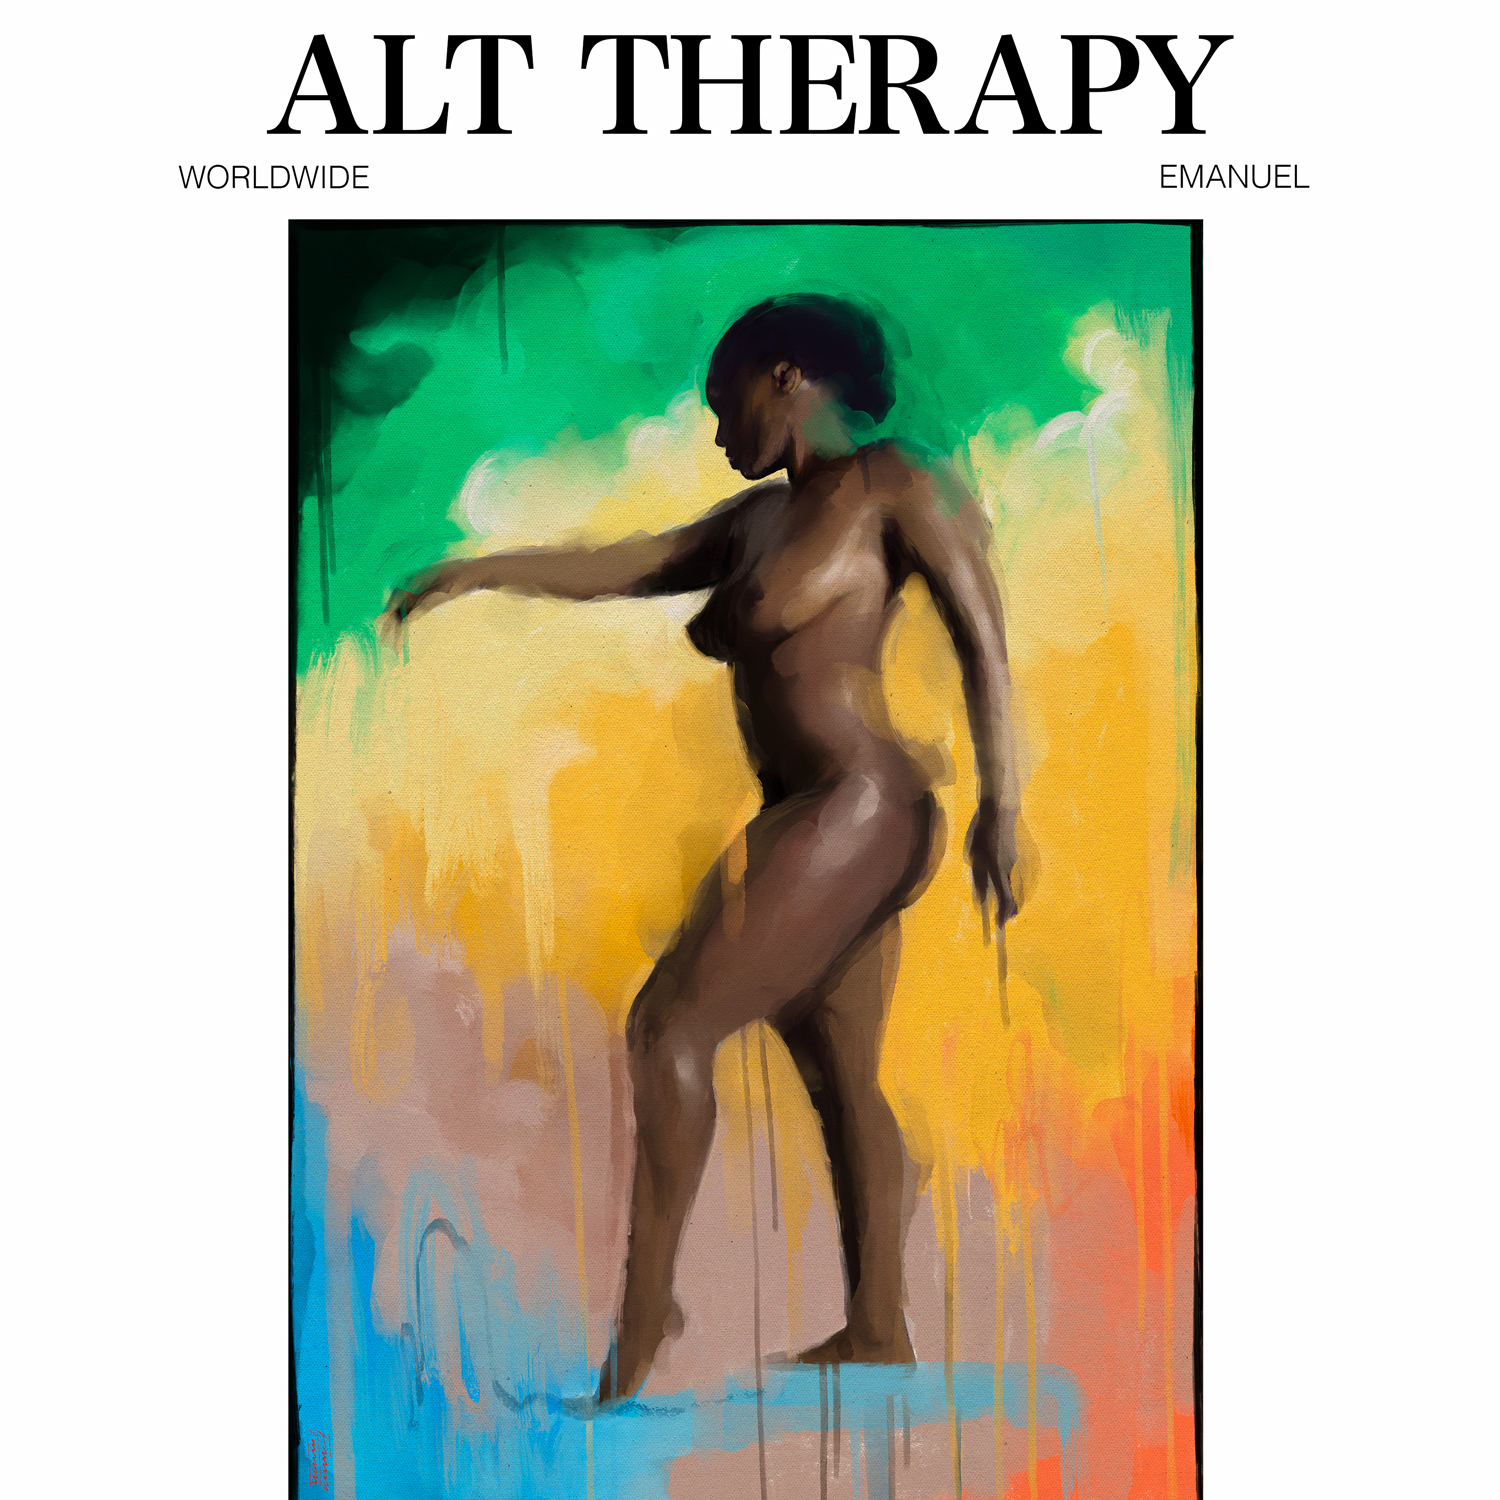 Alt Therapy by Emanuel artwork courtesy of Motown Records and Capitol Music Group for use by 360 Magazine